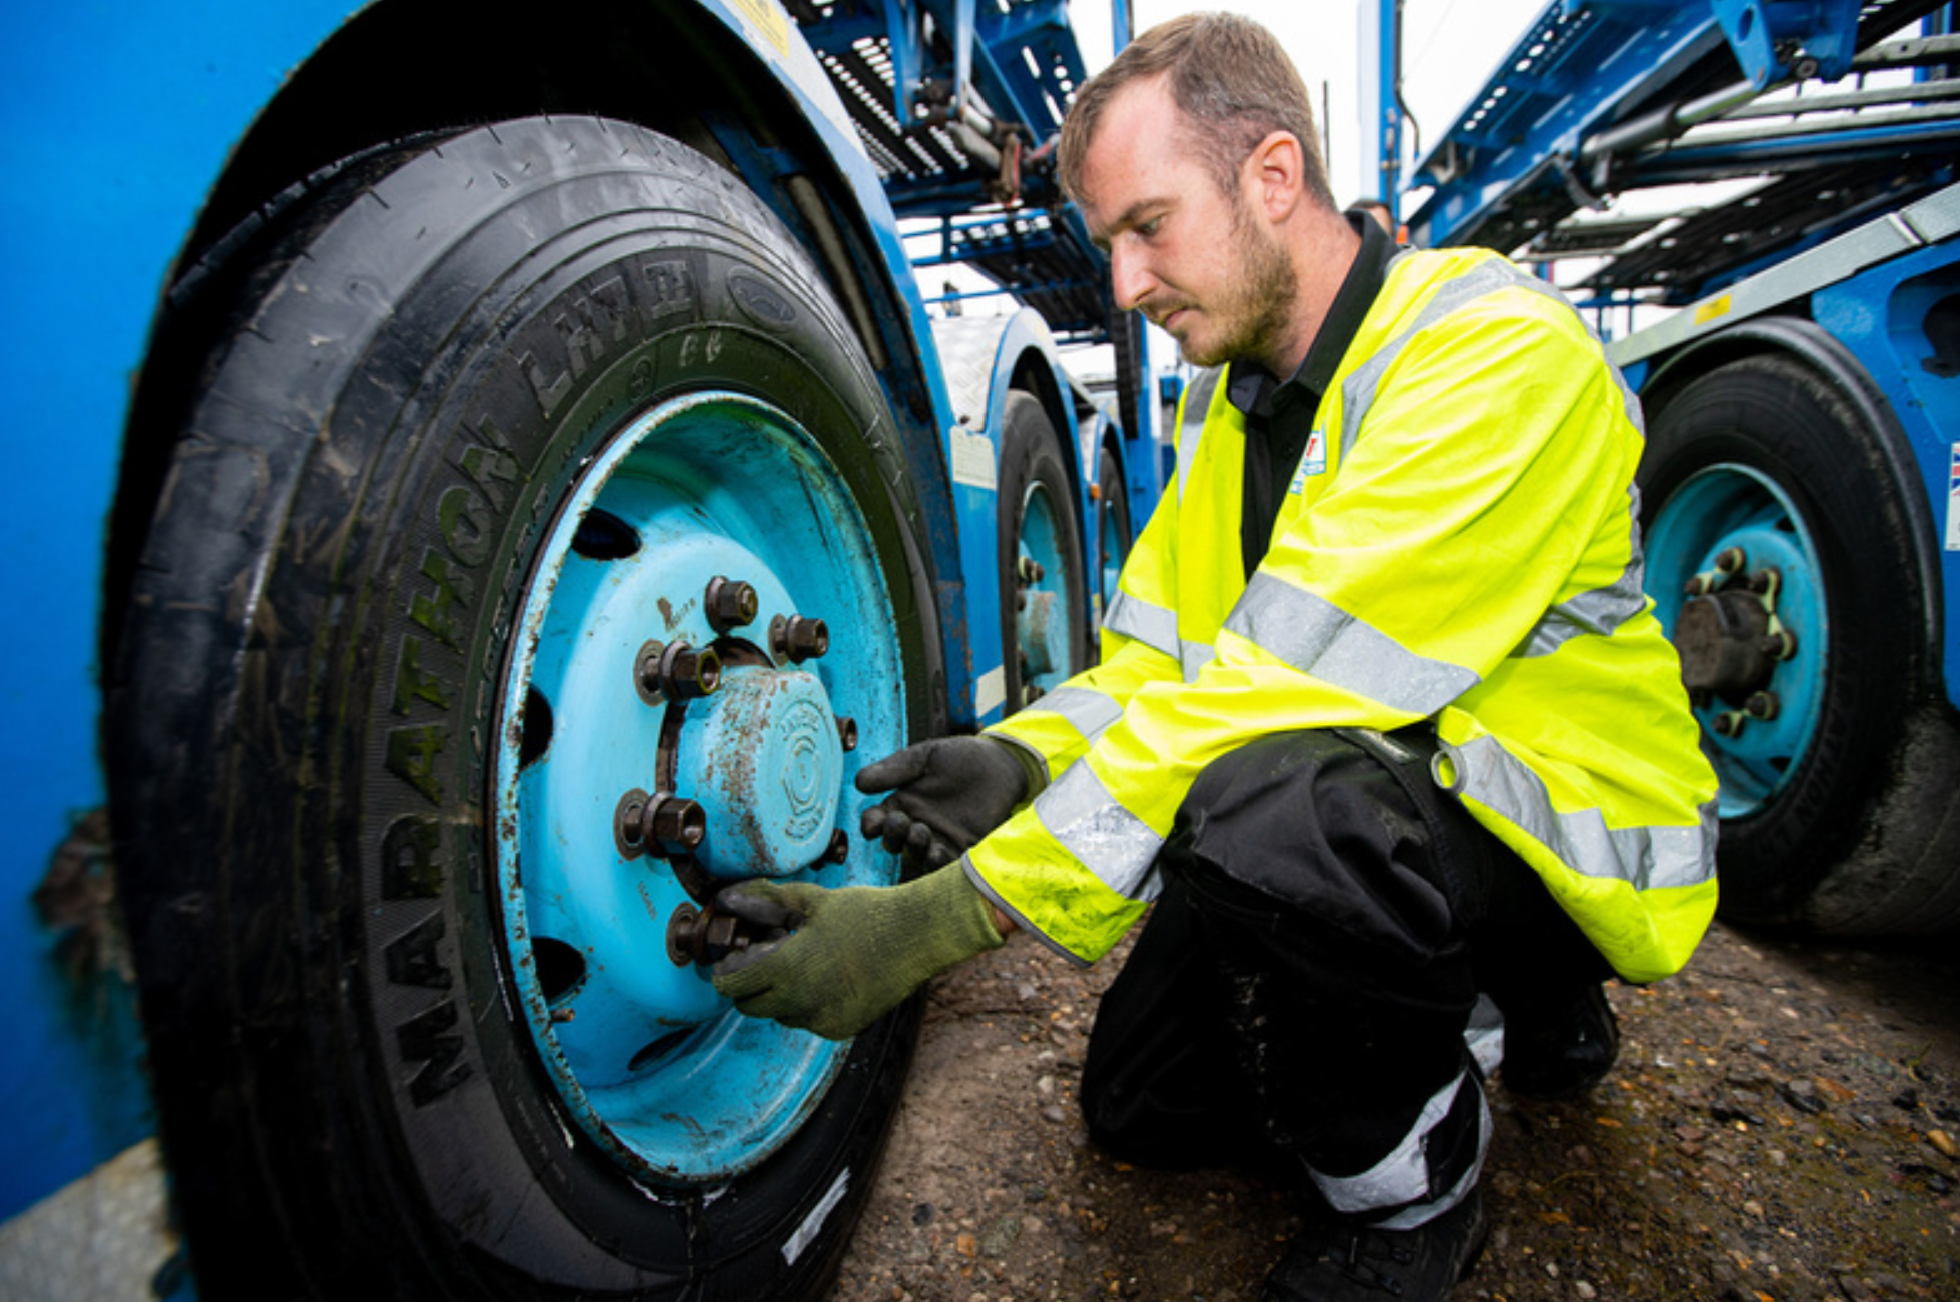 Goodyear TruckForce saved over 2,600 hours of customer downtime last year